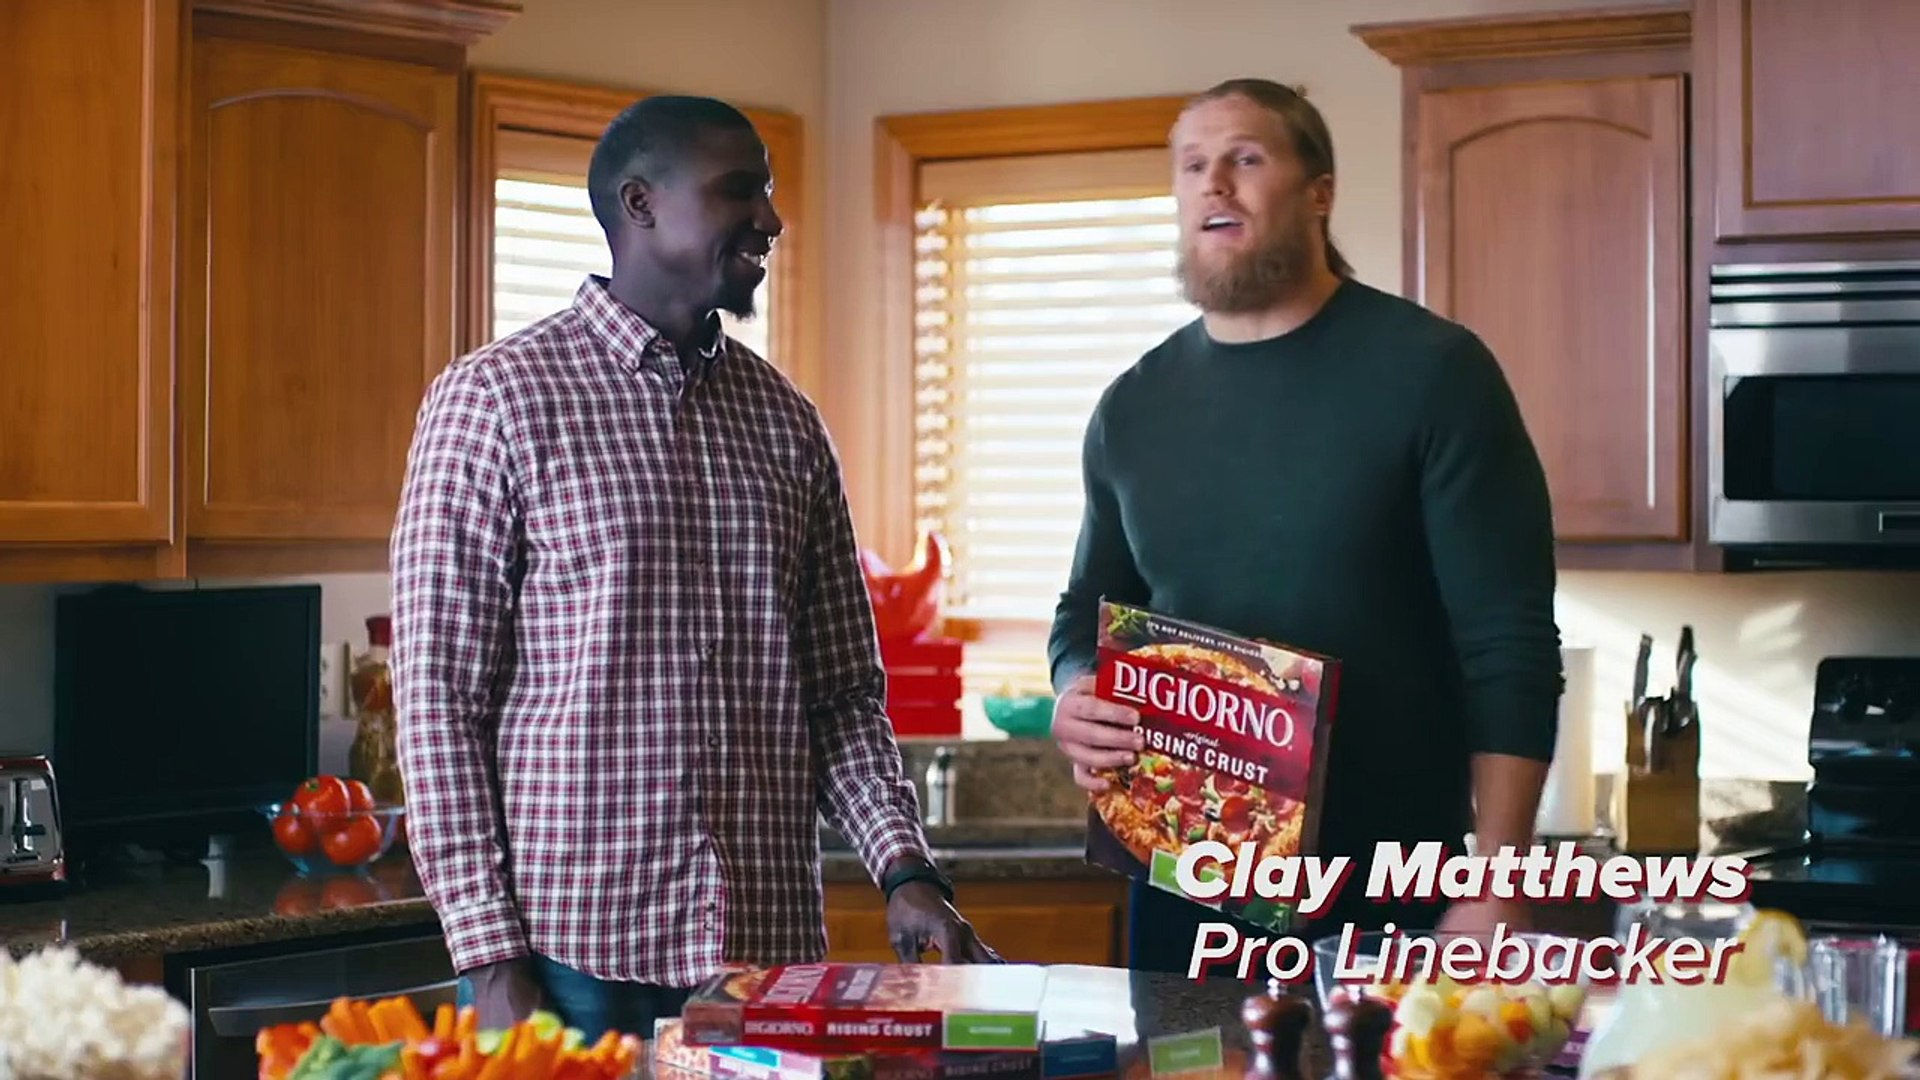 Typical Game Day Party Guests featuring Clay Matthews | #MakeTheRightCall